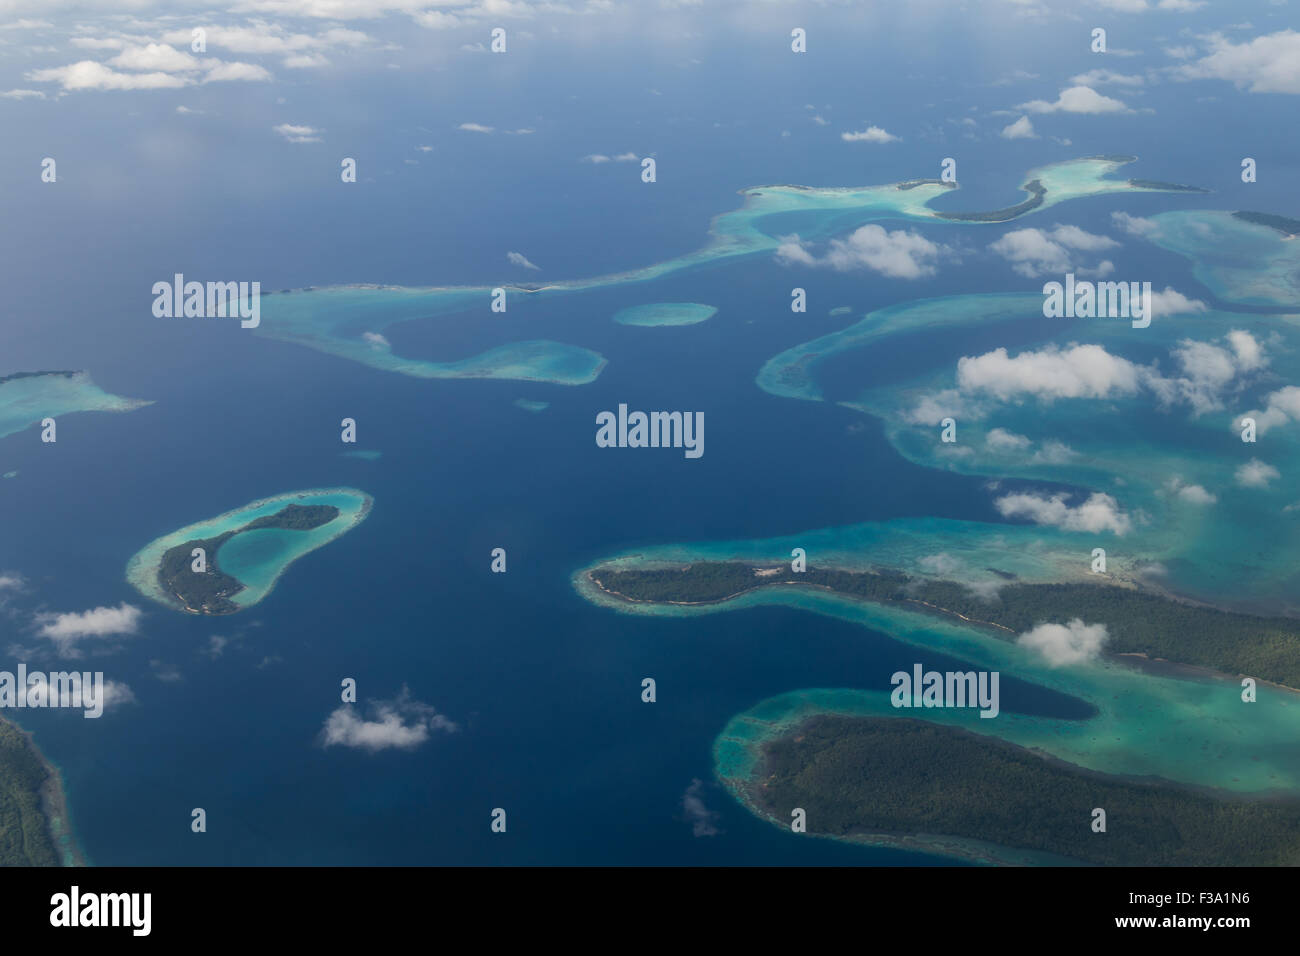 solomon-islands-aerial-view-F3A1N6.jpg